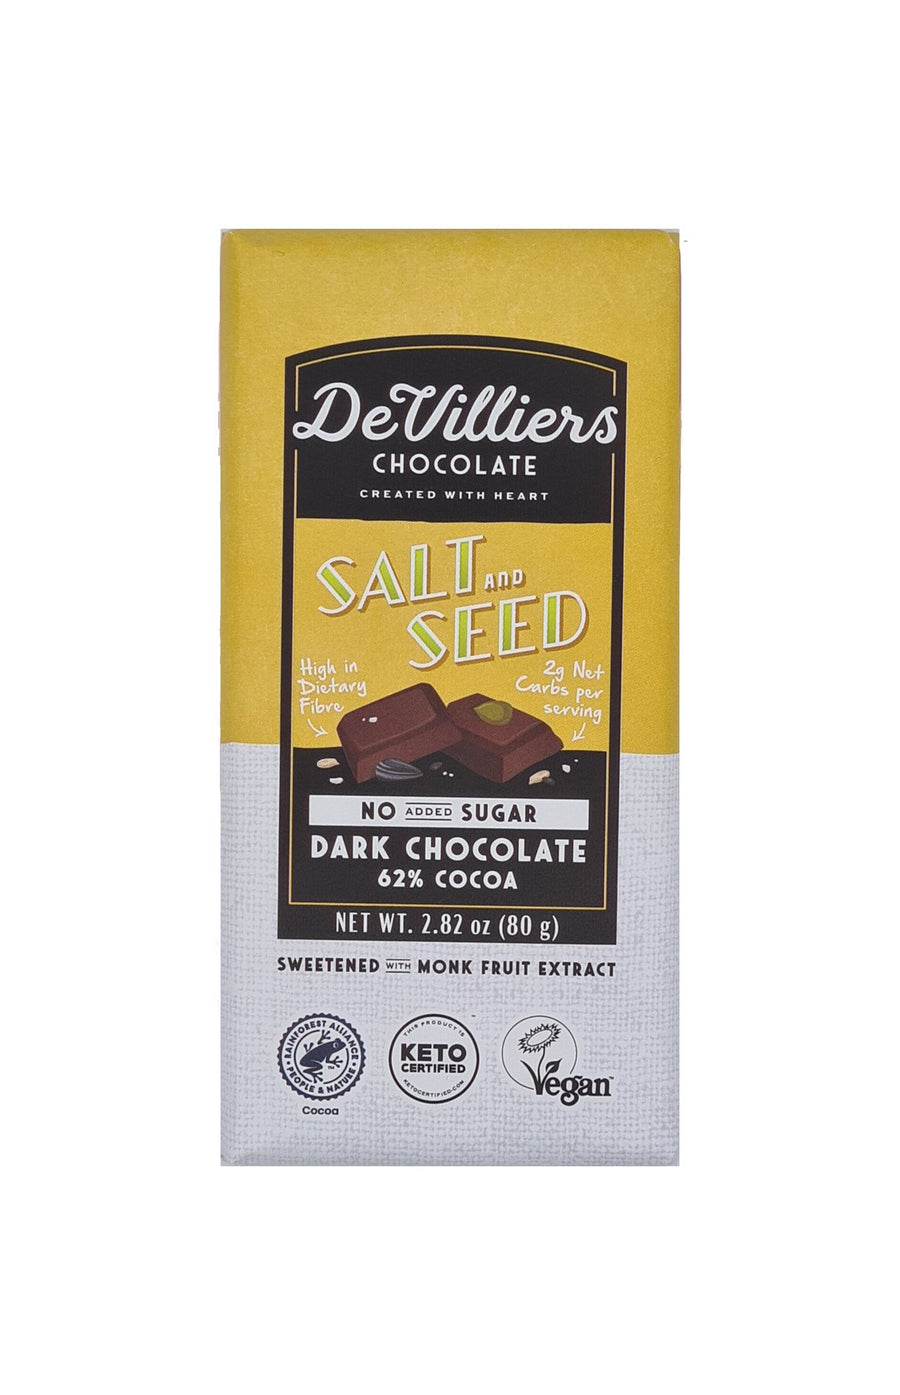 NO-ADDED-SUGAR SALT AND SEED 62 % COCOA  DARK CHOCOLATE BAR - de villiers chocolate us